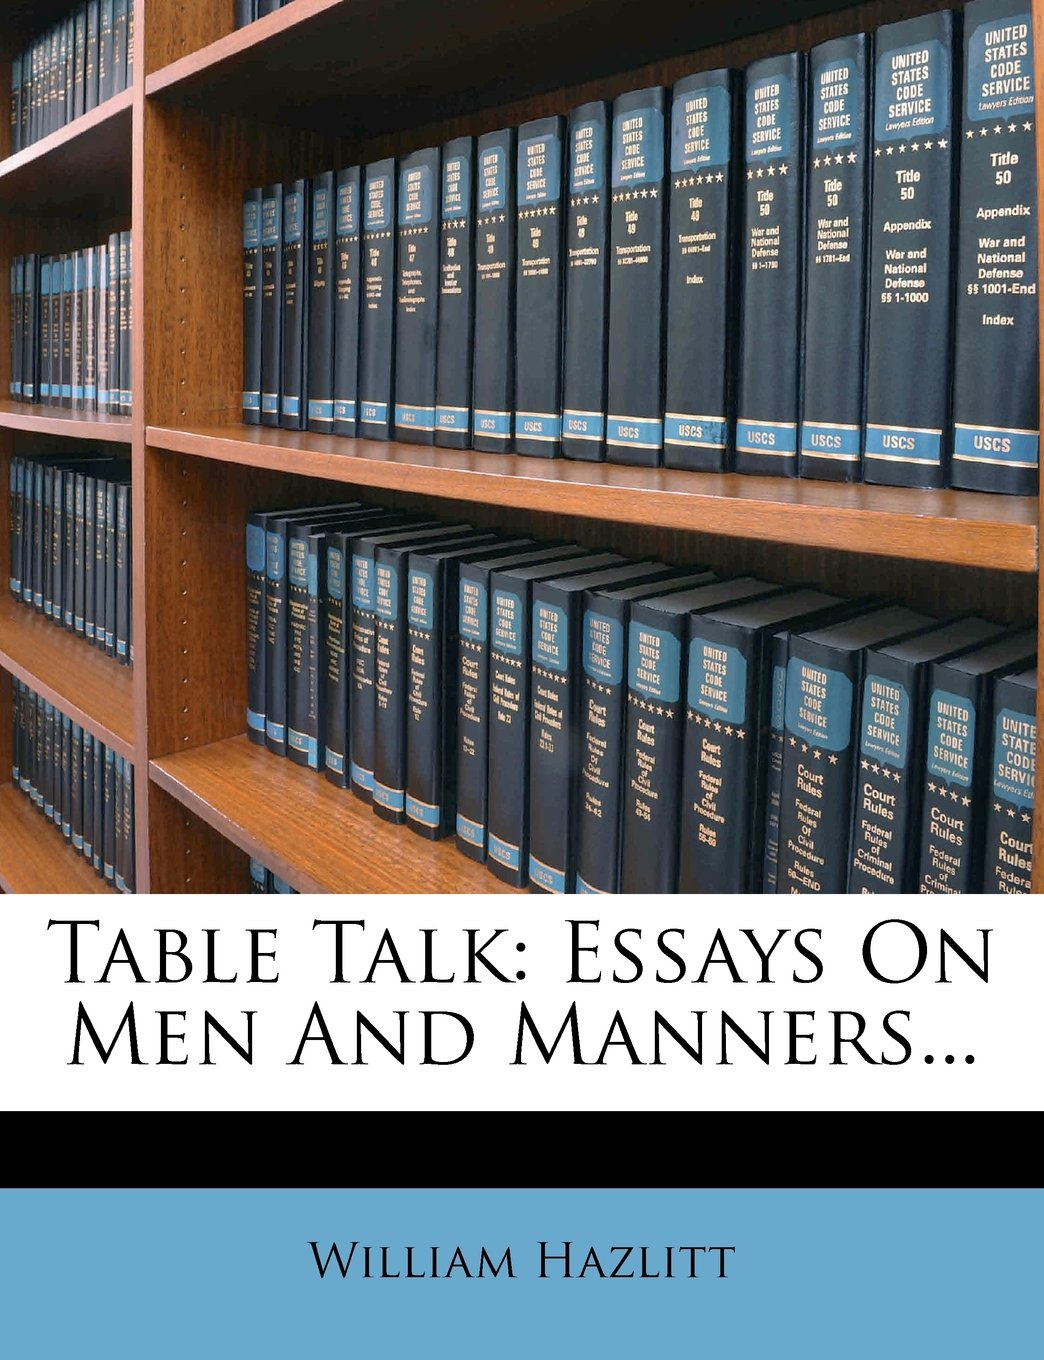 Table Talk: Essays On Men And Manners... ebook